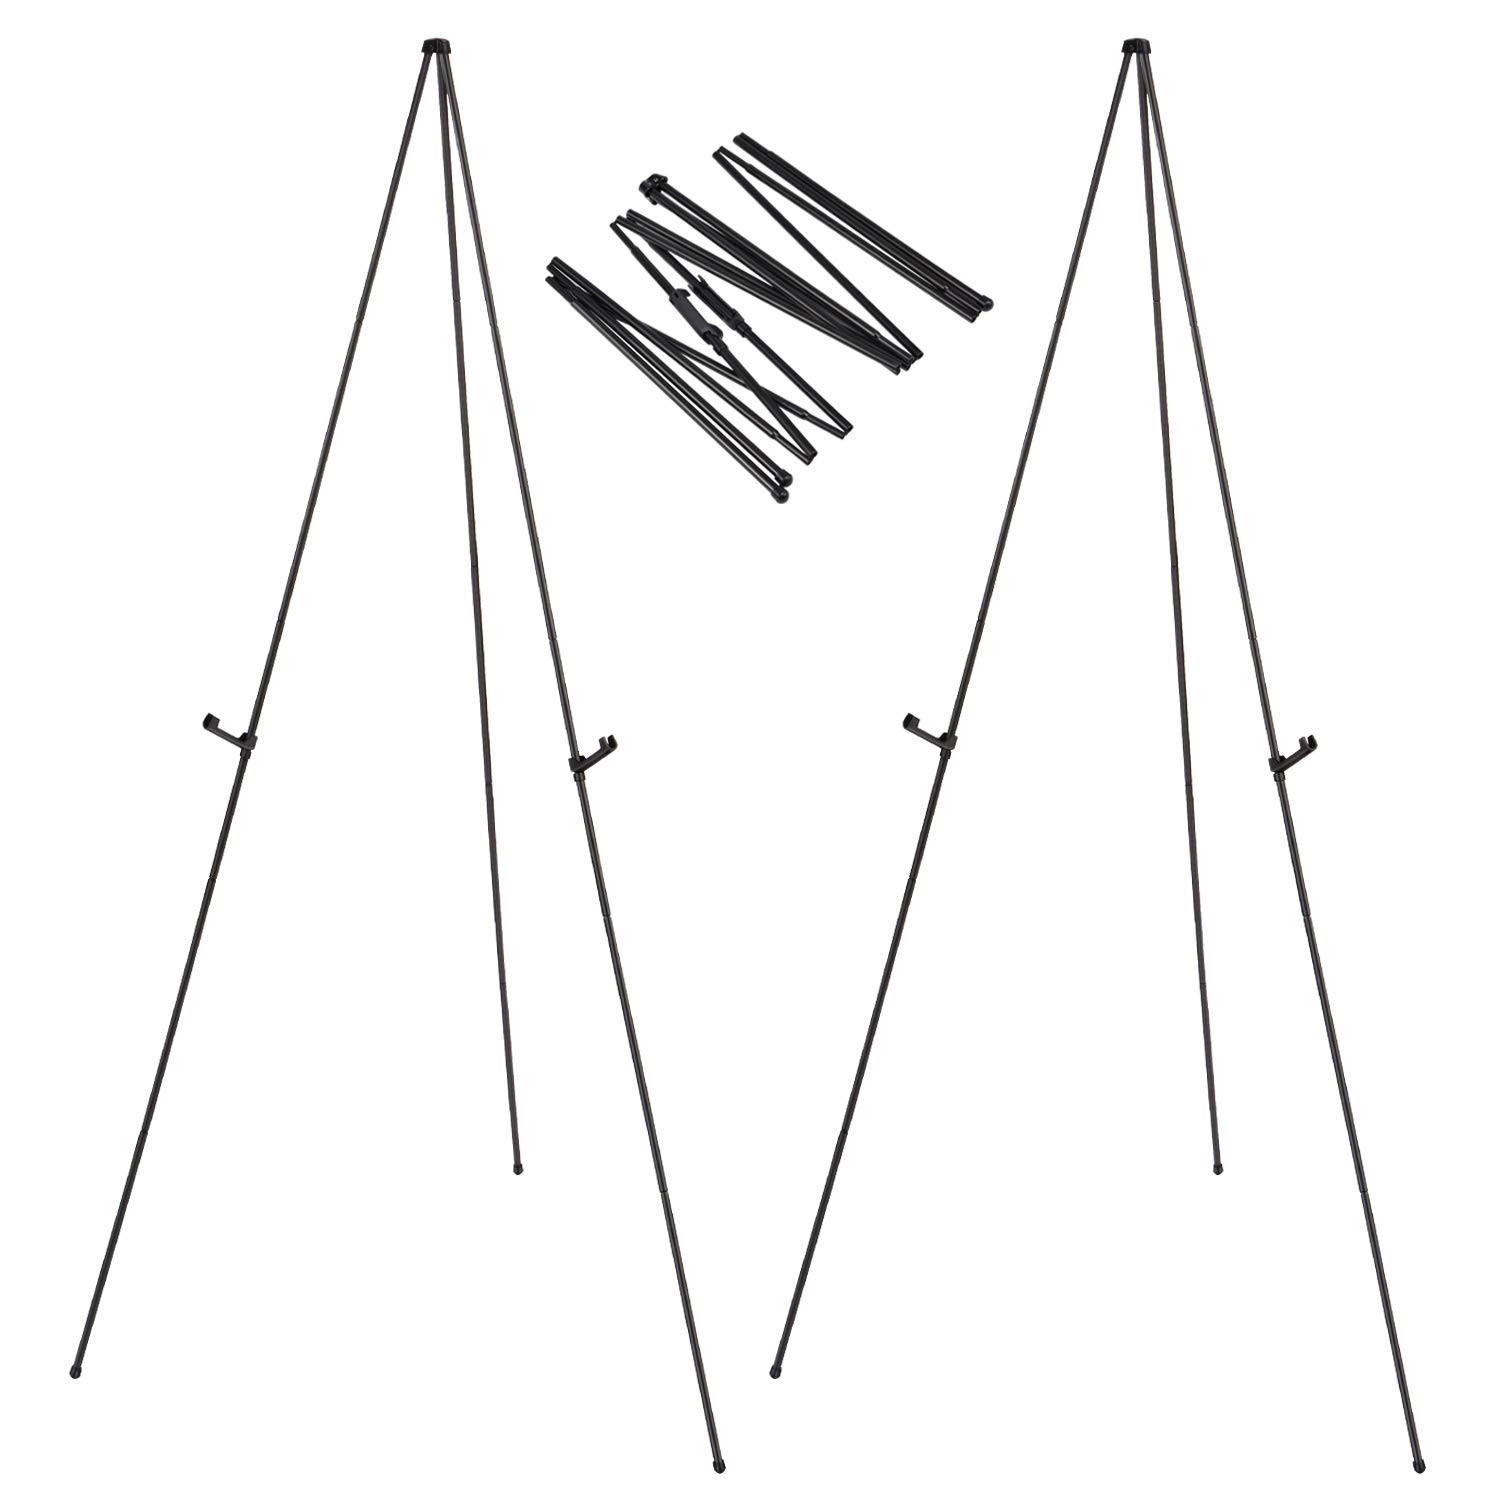 Folding Easel for Display, Magicfly 63 Inch Floor Poster Easel Stand Lightweight Aluminum Telescoping Easels, Black, Pack of 2 by Magicfly